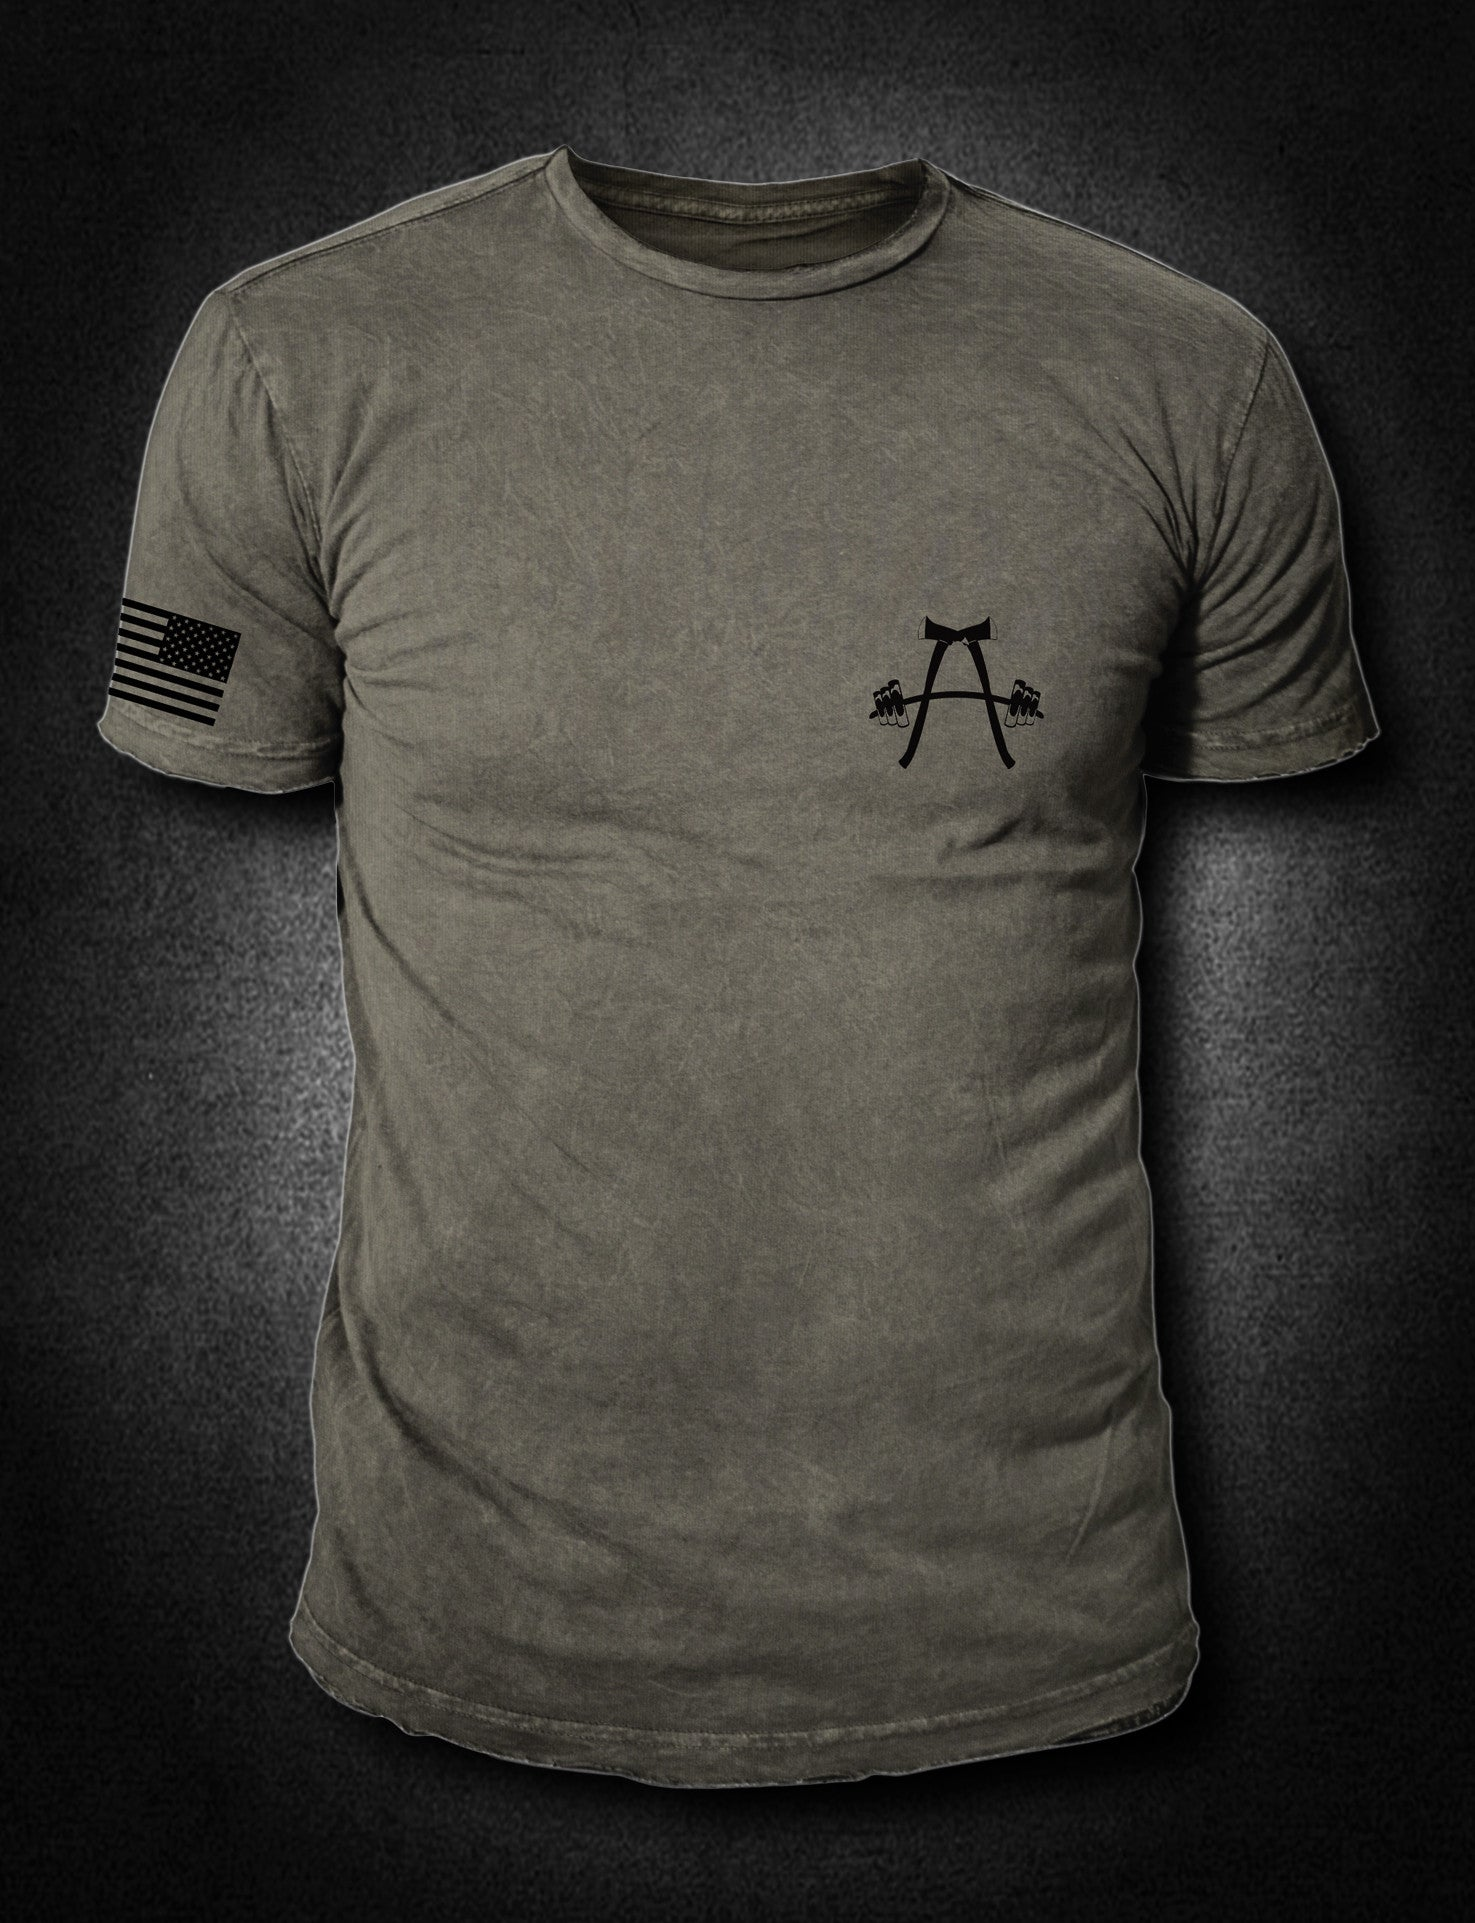 AFA - My Irons - AmericanFireApparel  - 2